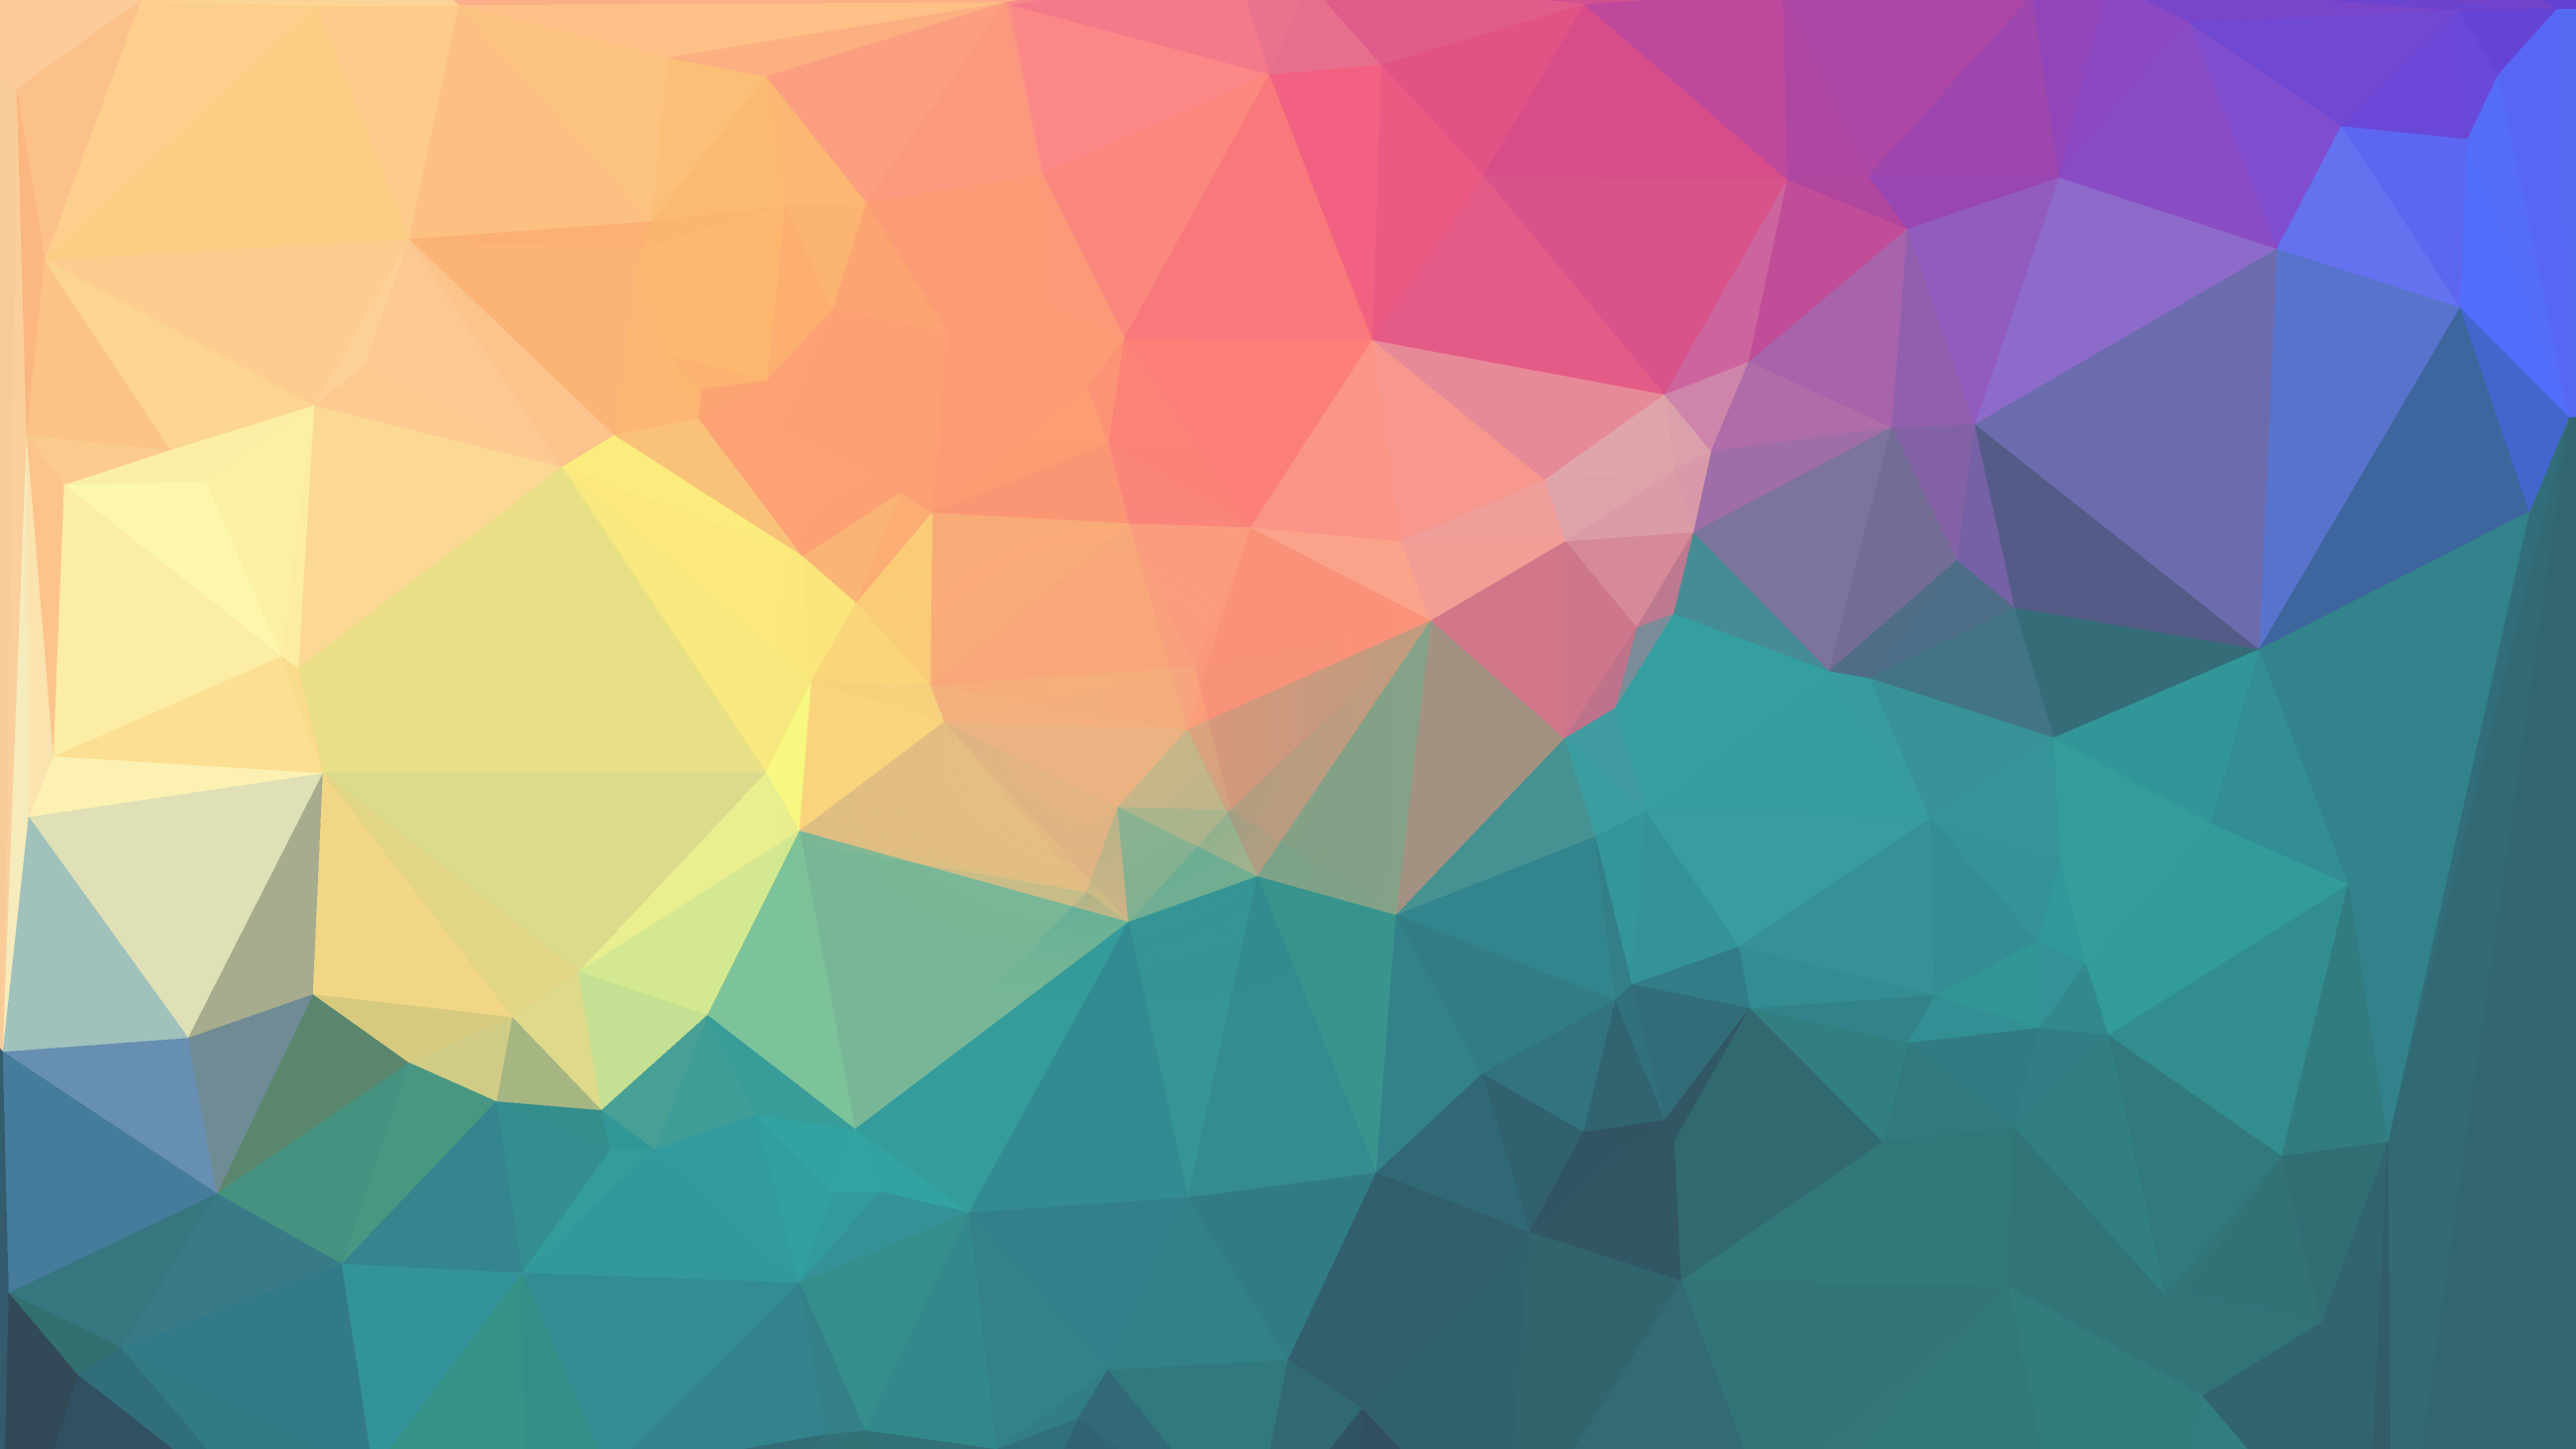 Wallpaper geometric color 22 2k uhd by airworldking on - Geometric wallpaper colorful ...